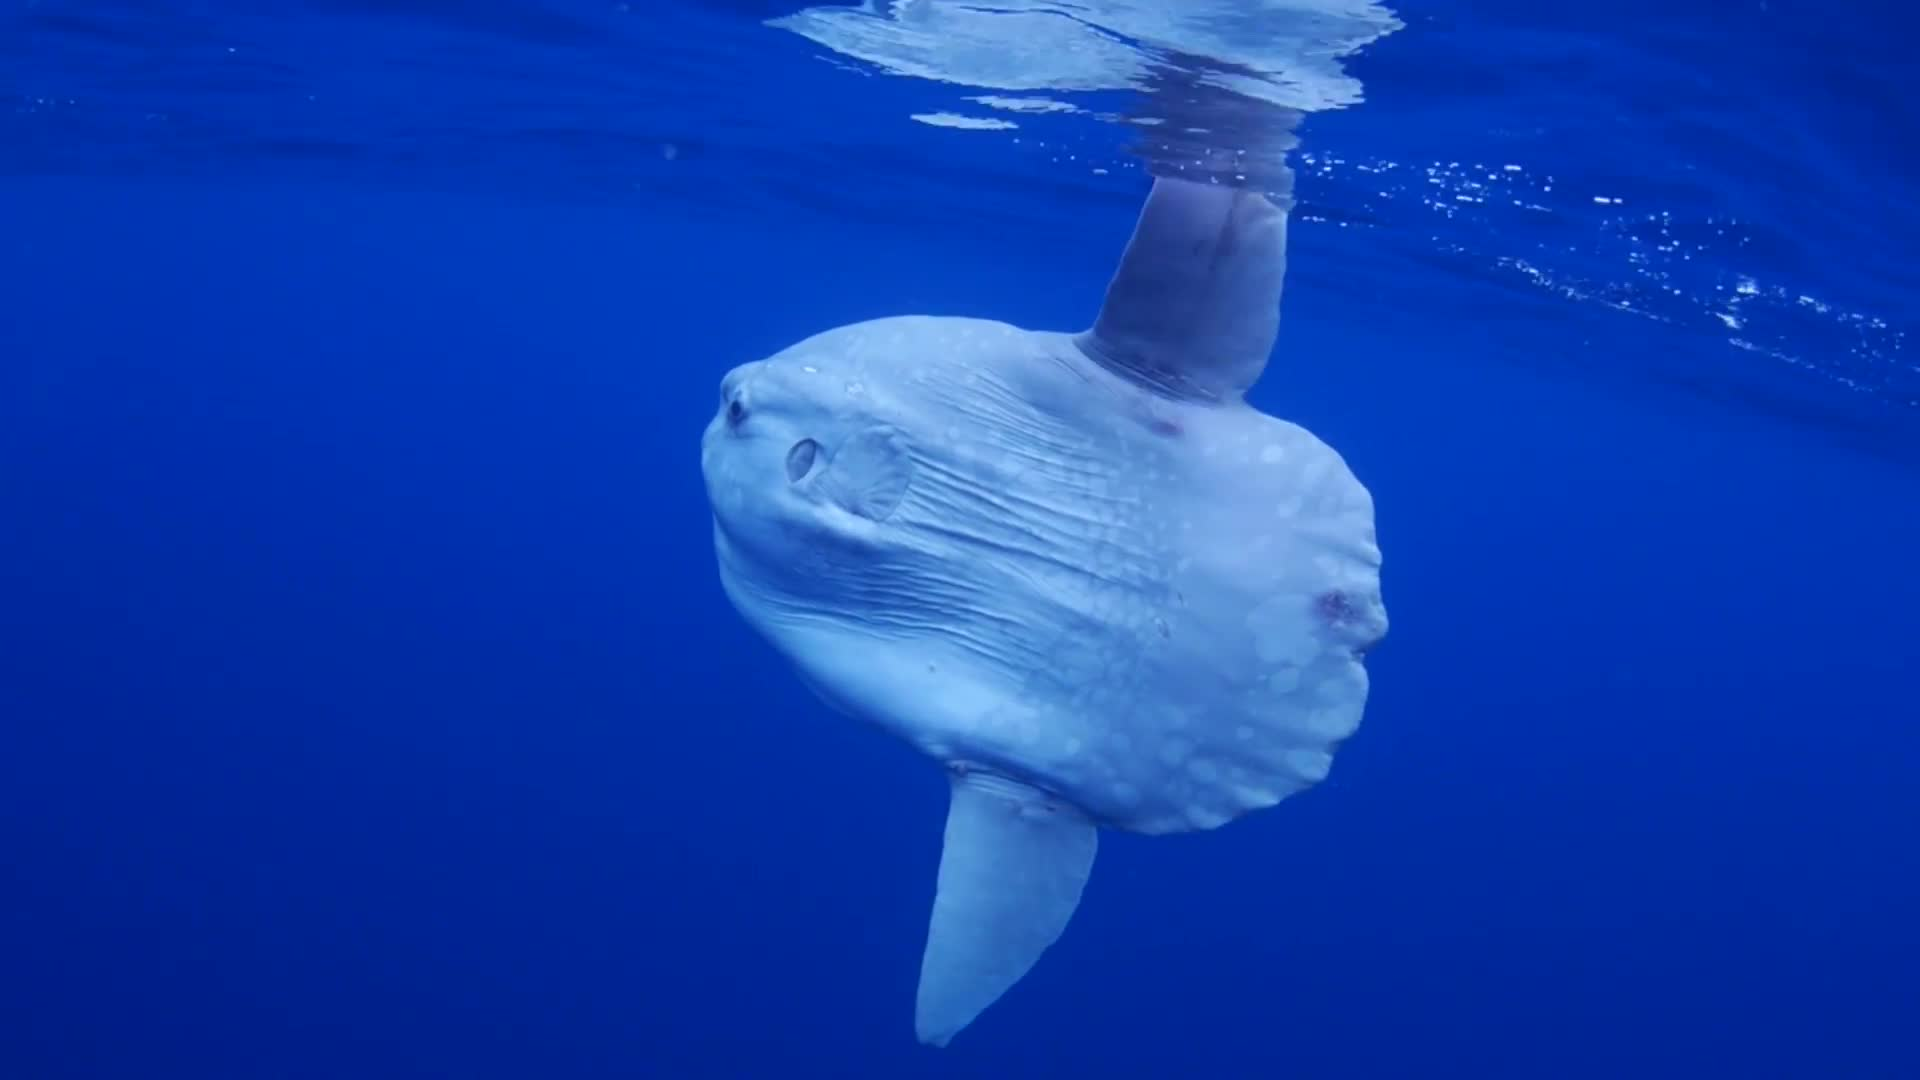 wired_absurd-creature-the-ocean-sunfish-1